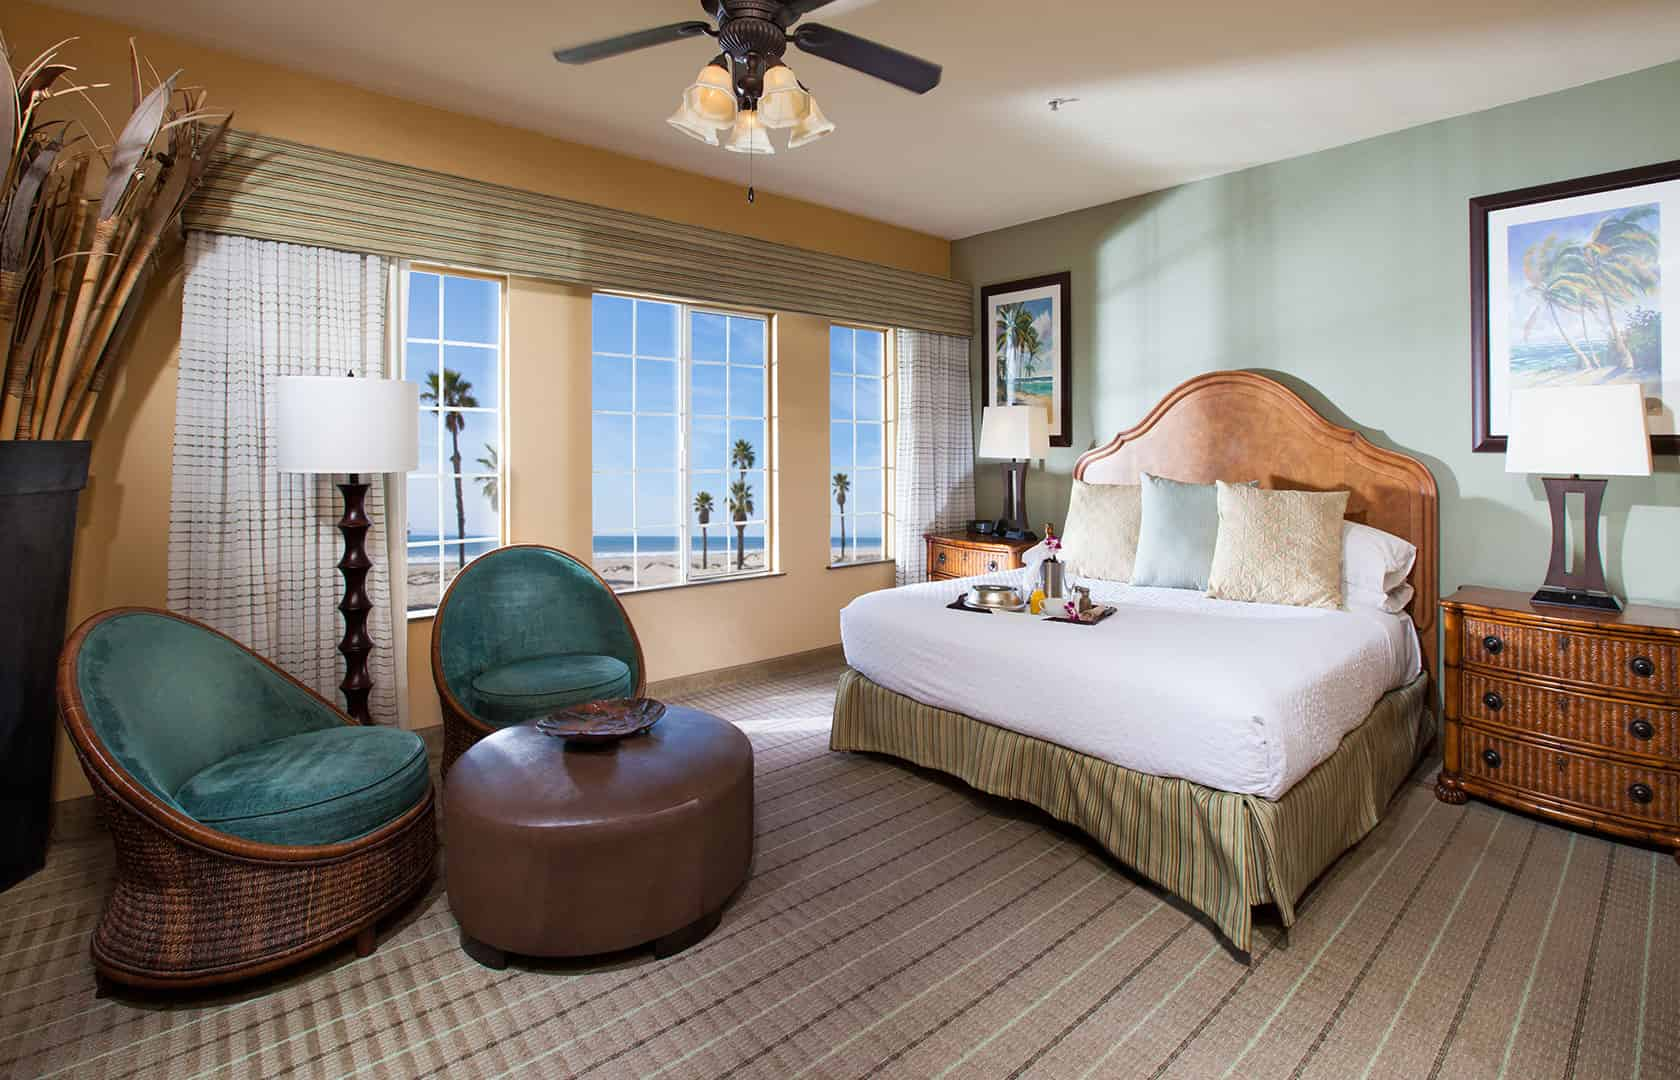 Mandalay Beach Hotel Rooms - Embassy Suites by Hilton